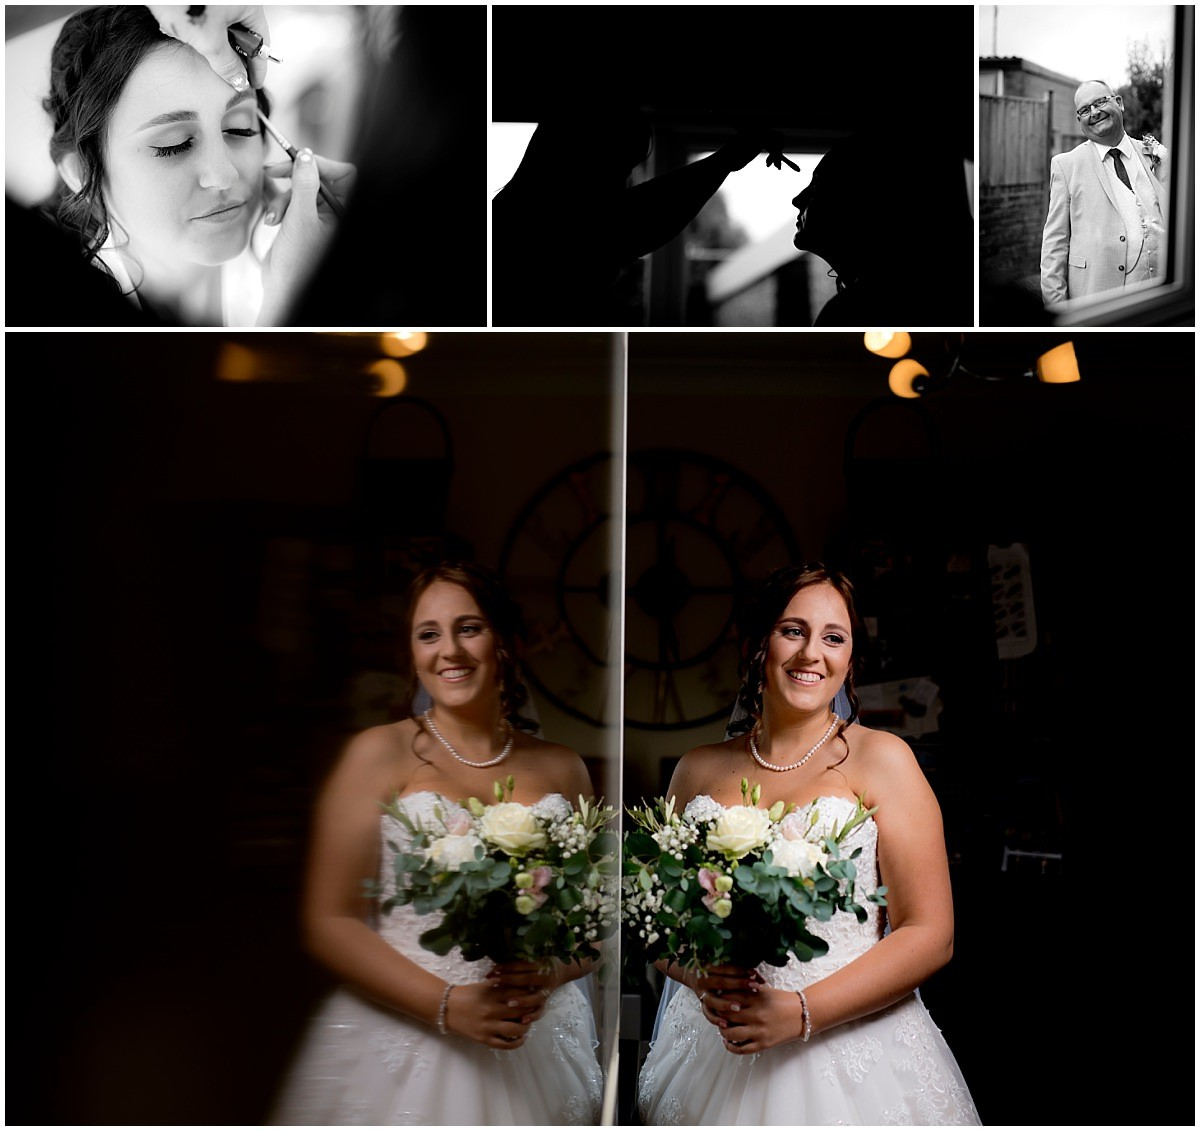 Rufford Mill Wedding Photography bride